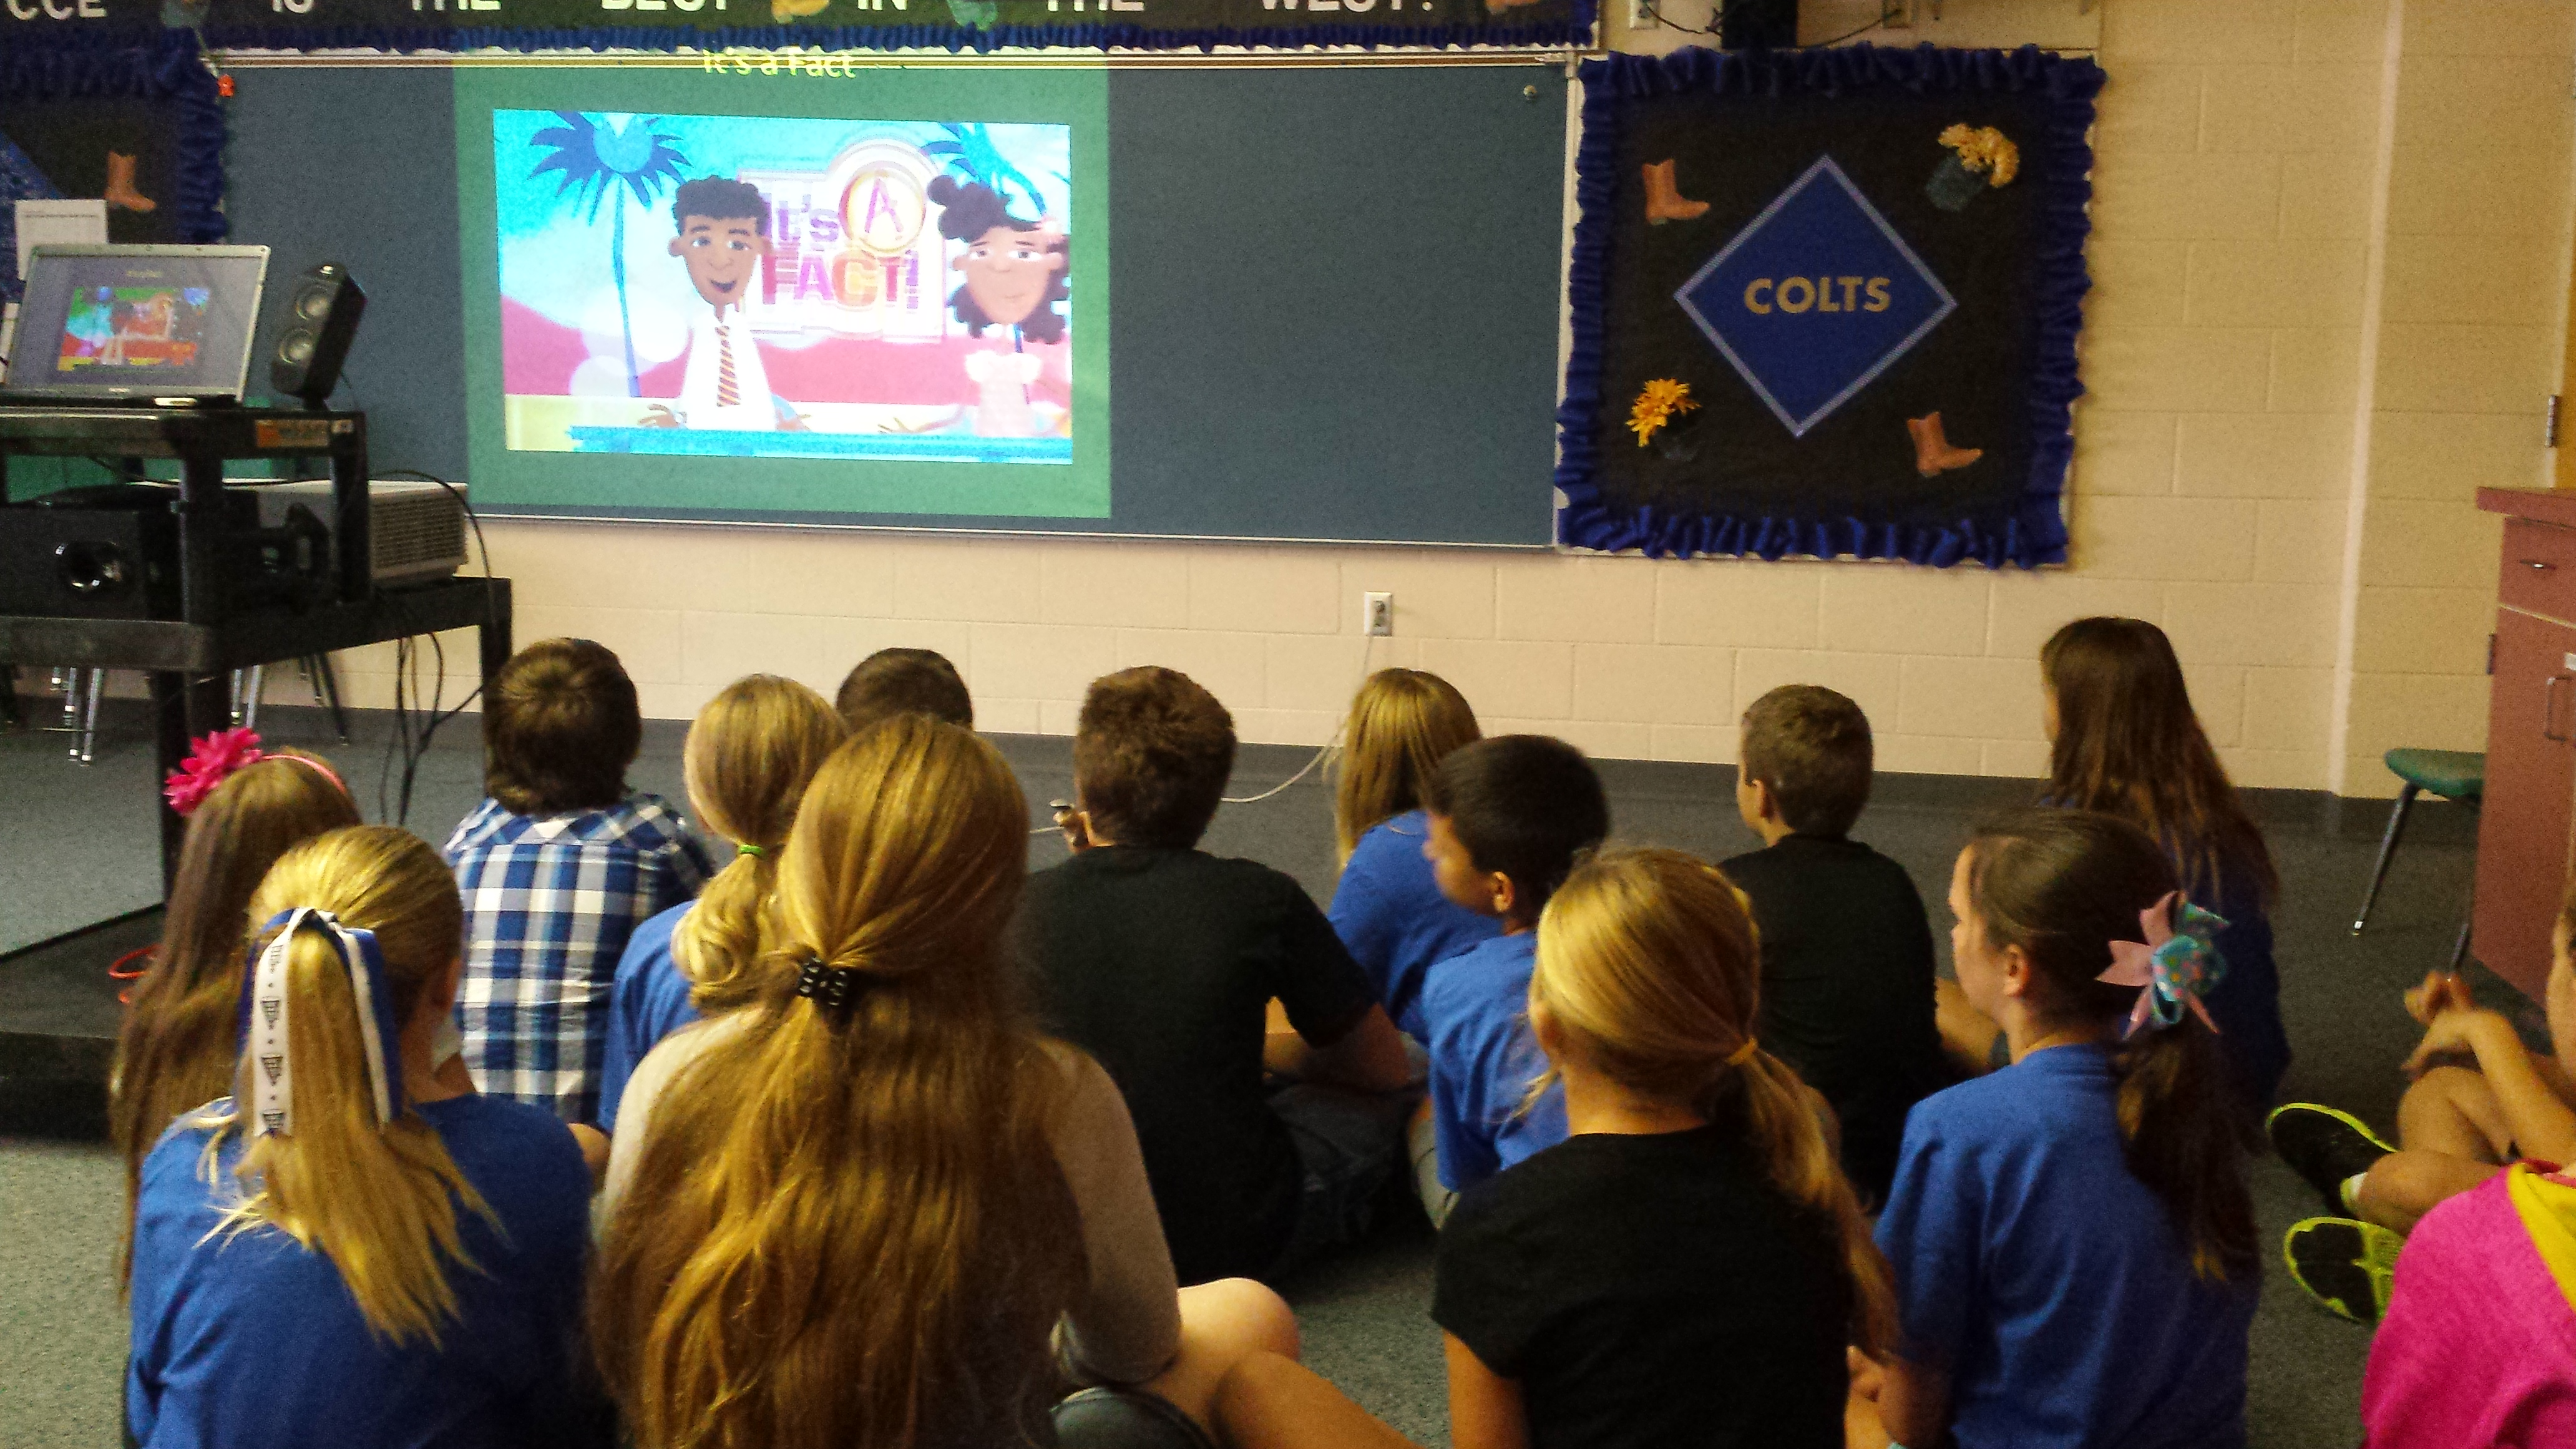 Students watch a video on personal responsibility and respect